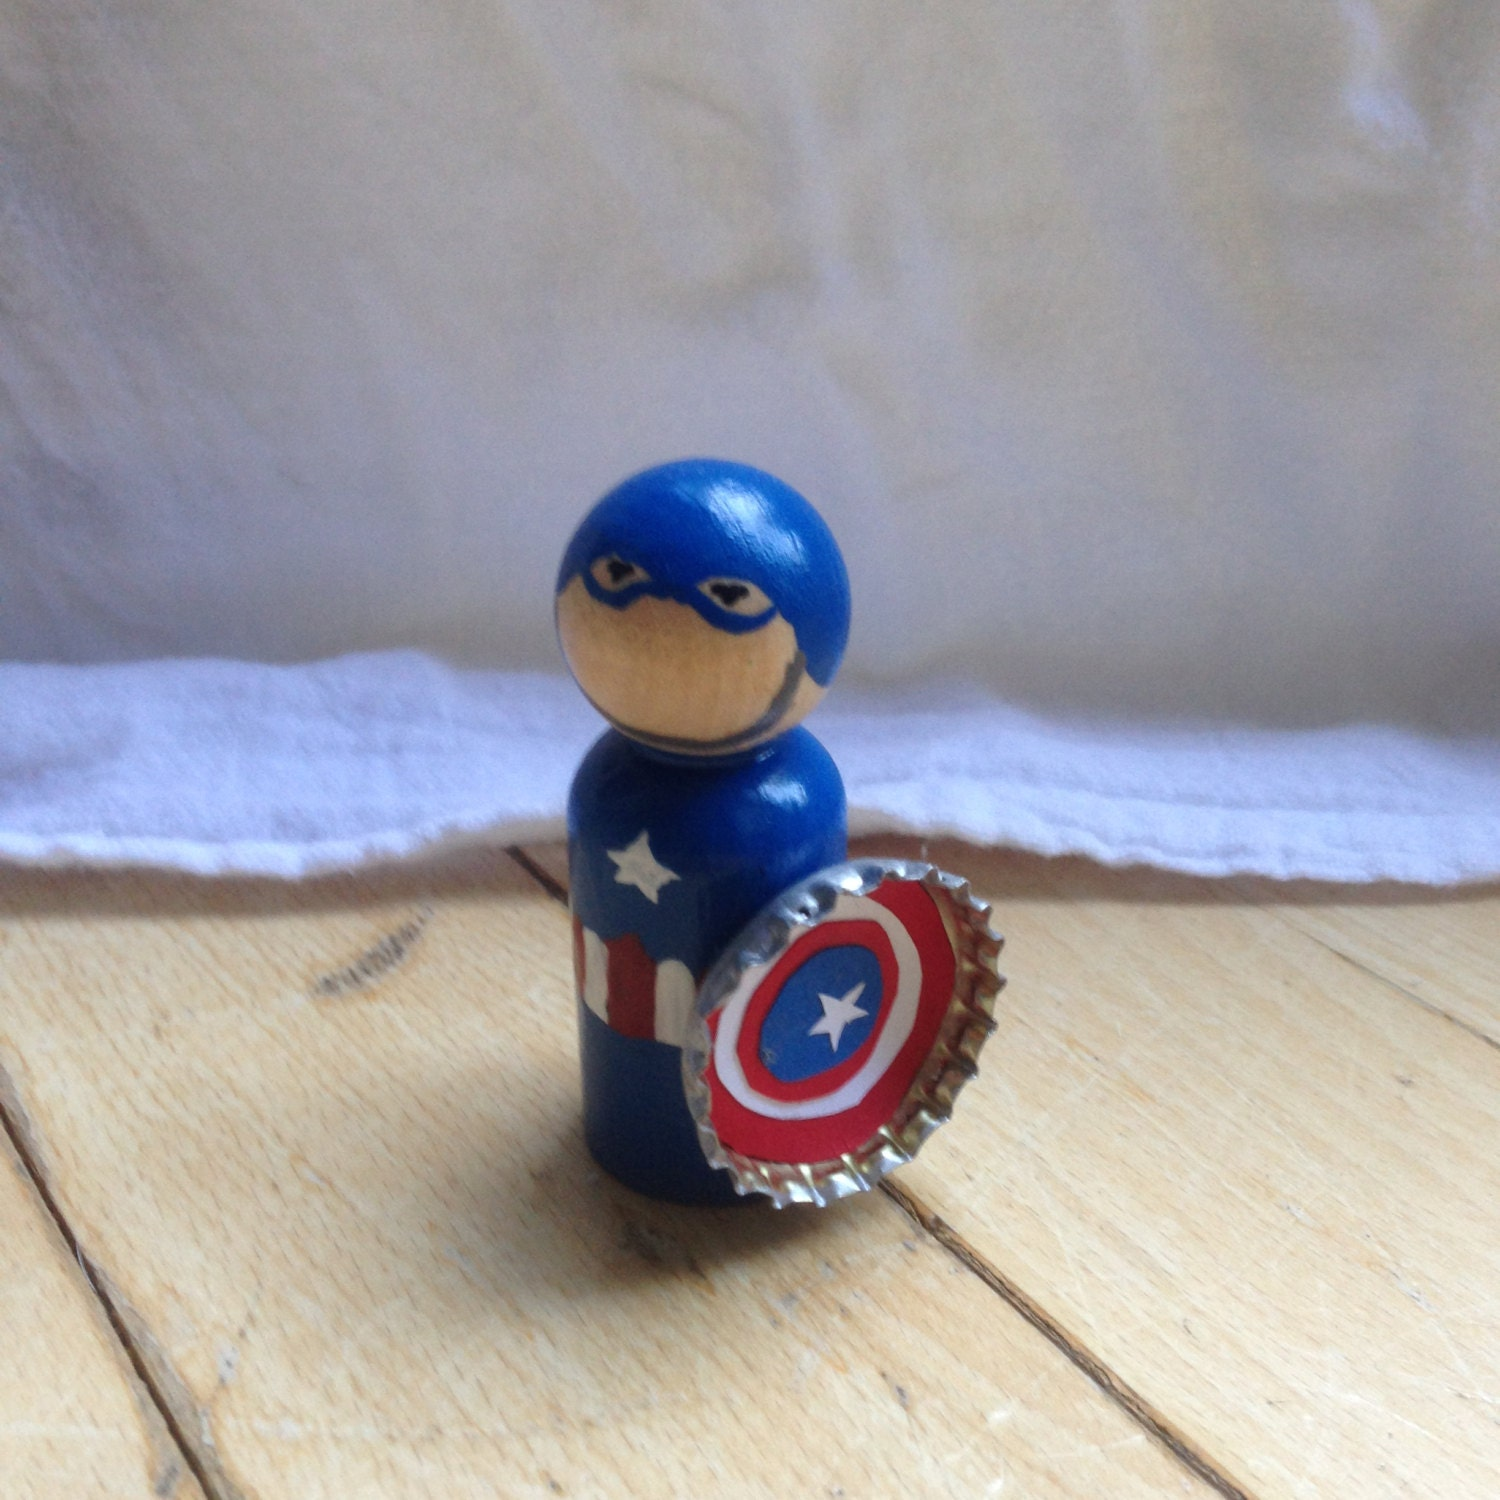 Marvel Captain America Steve Rogers peg doll